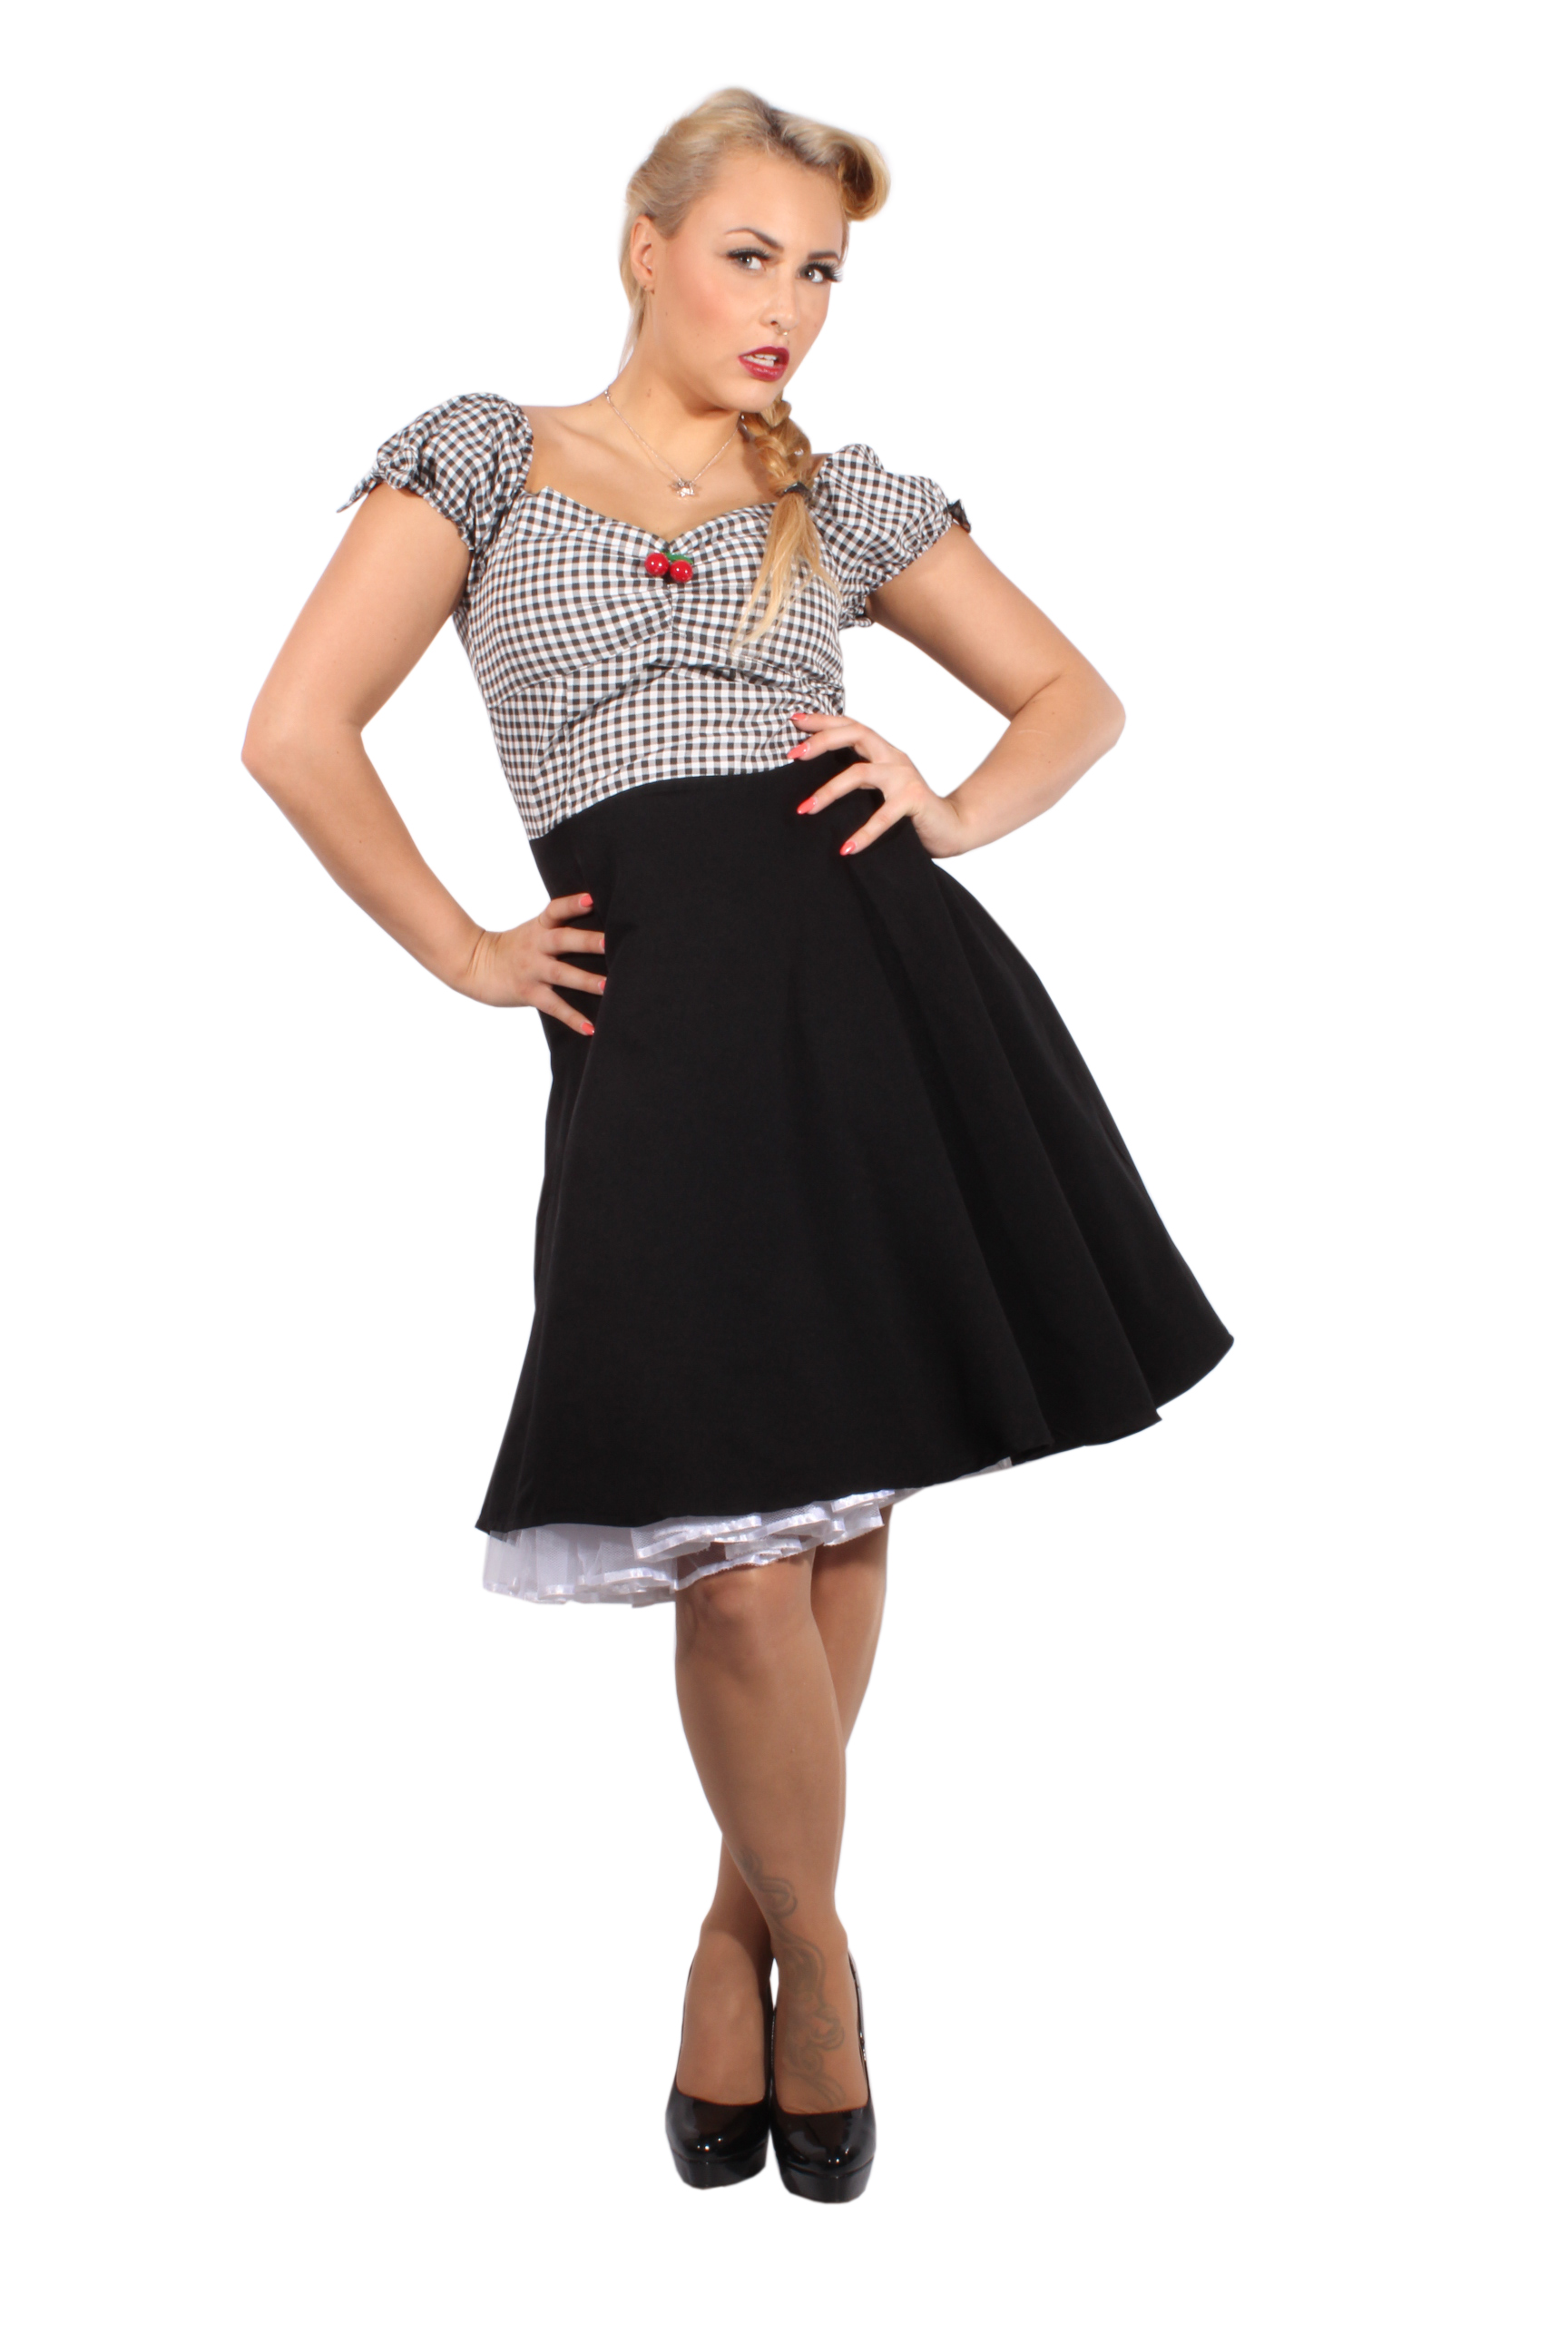 Black Gingham rockabilly Cherry Carmen Swing Karo Kleid Petticoatkleid